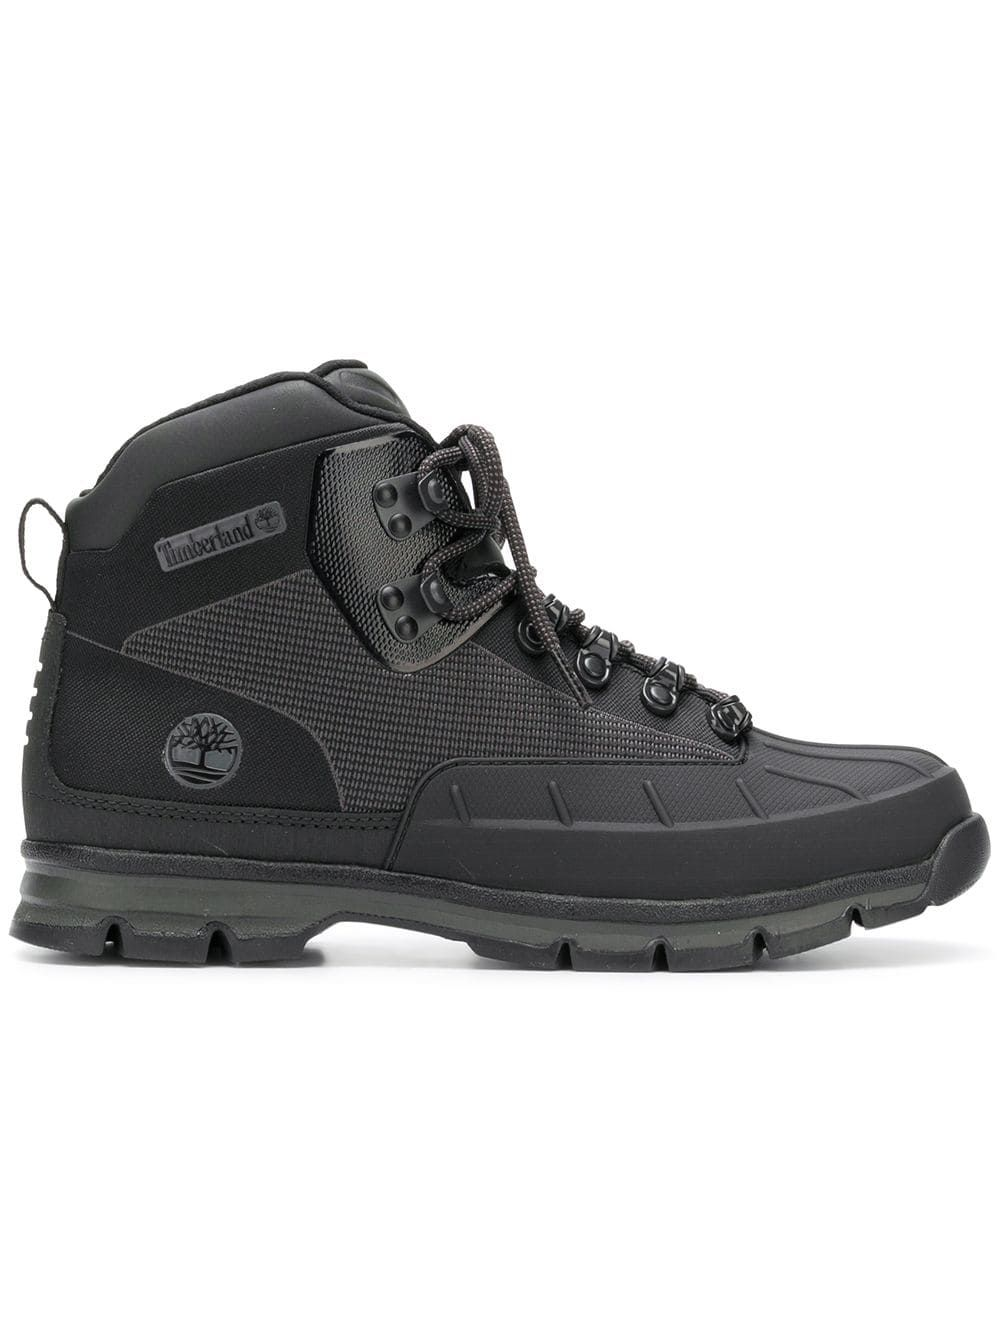 1554a923 TIMBERLAND TIMBERLAND LACE-UP TRECKING BOOTS - BLACK. #timberland #shoes